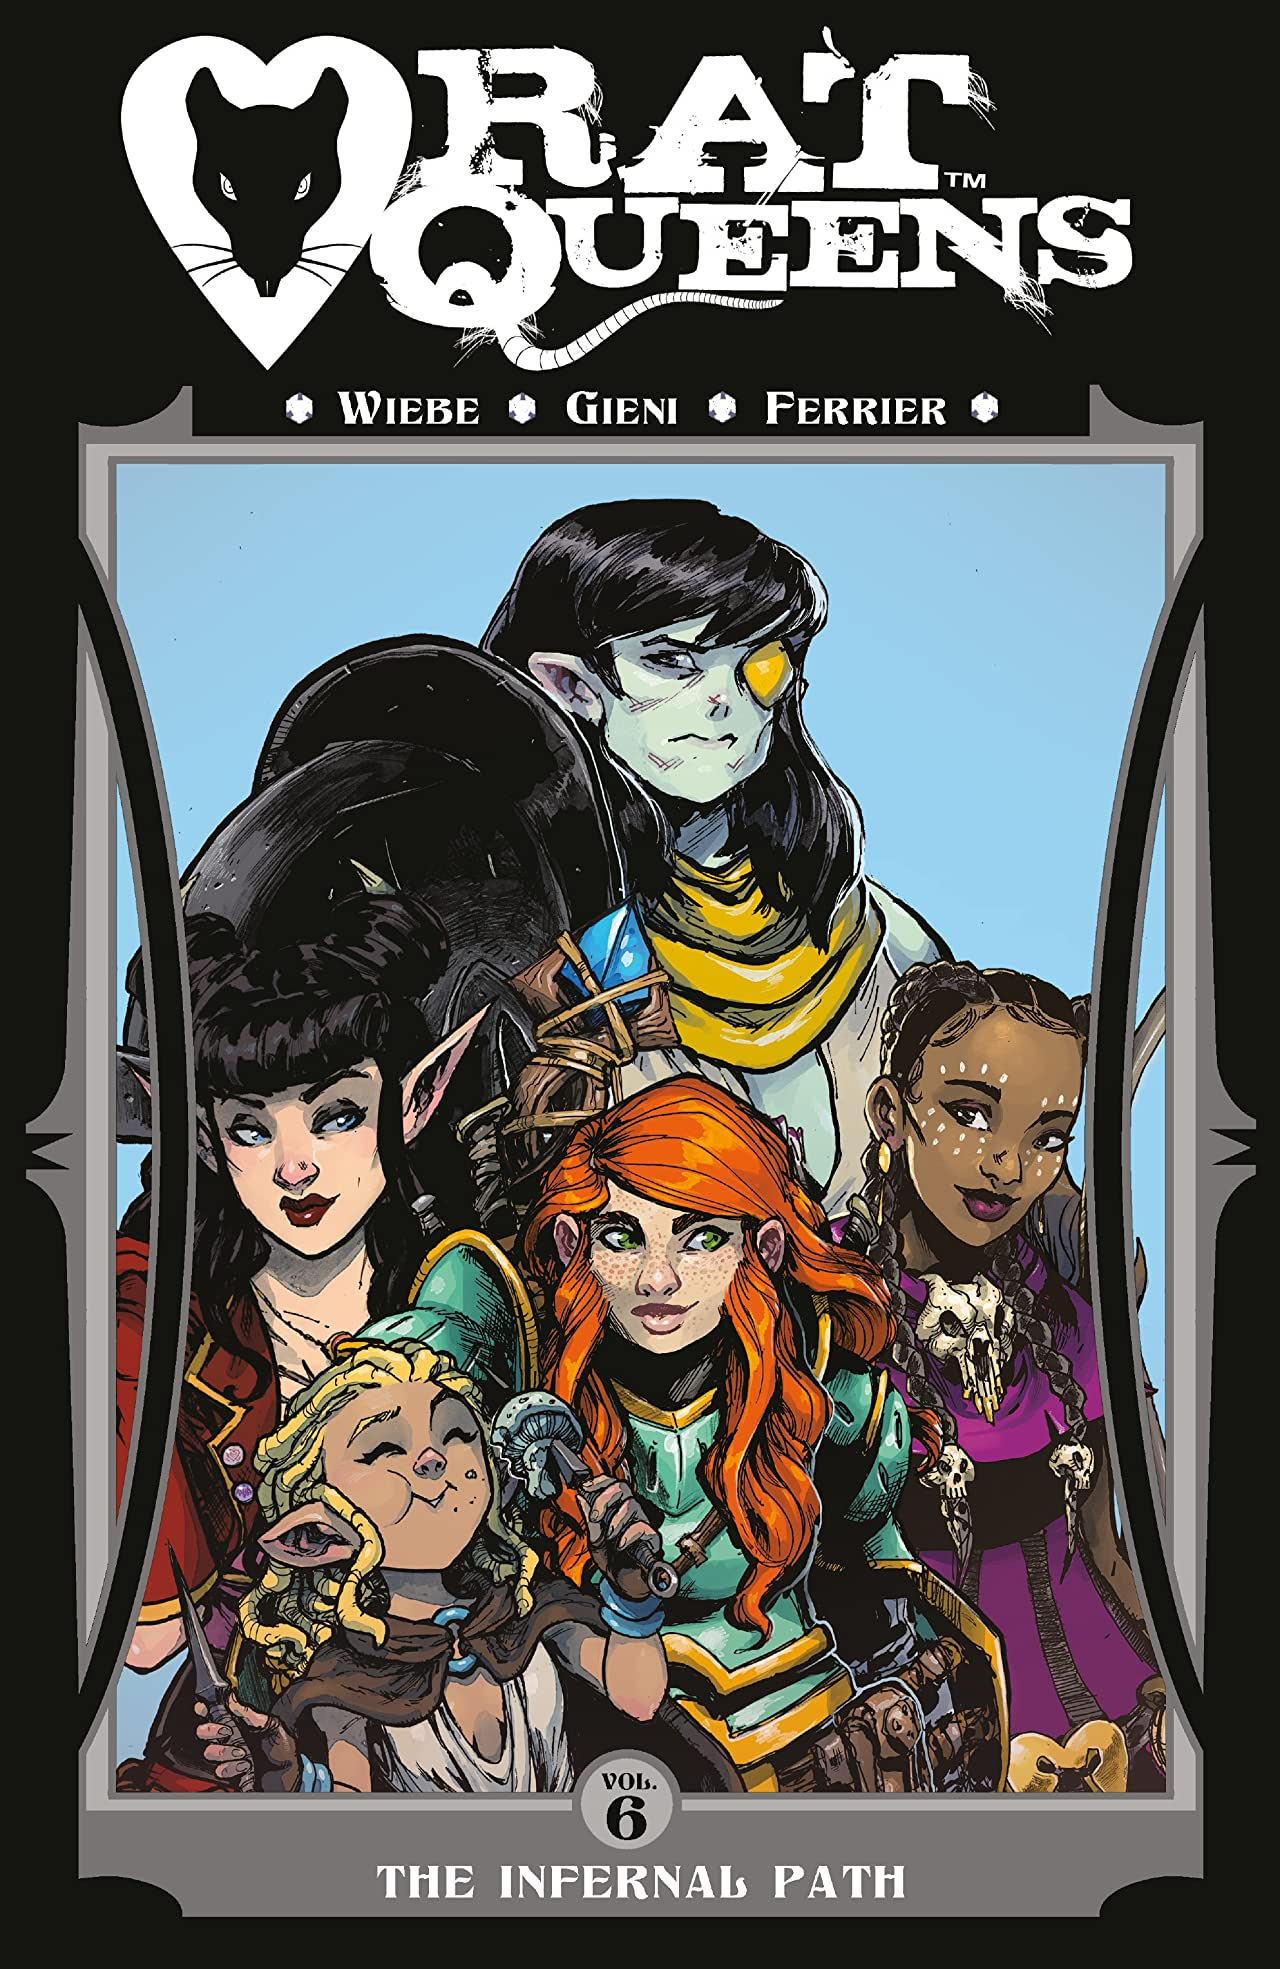 Rat Queens Vol. 6: The Infernal Path